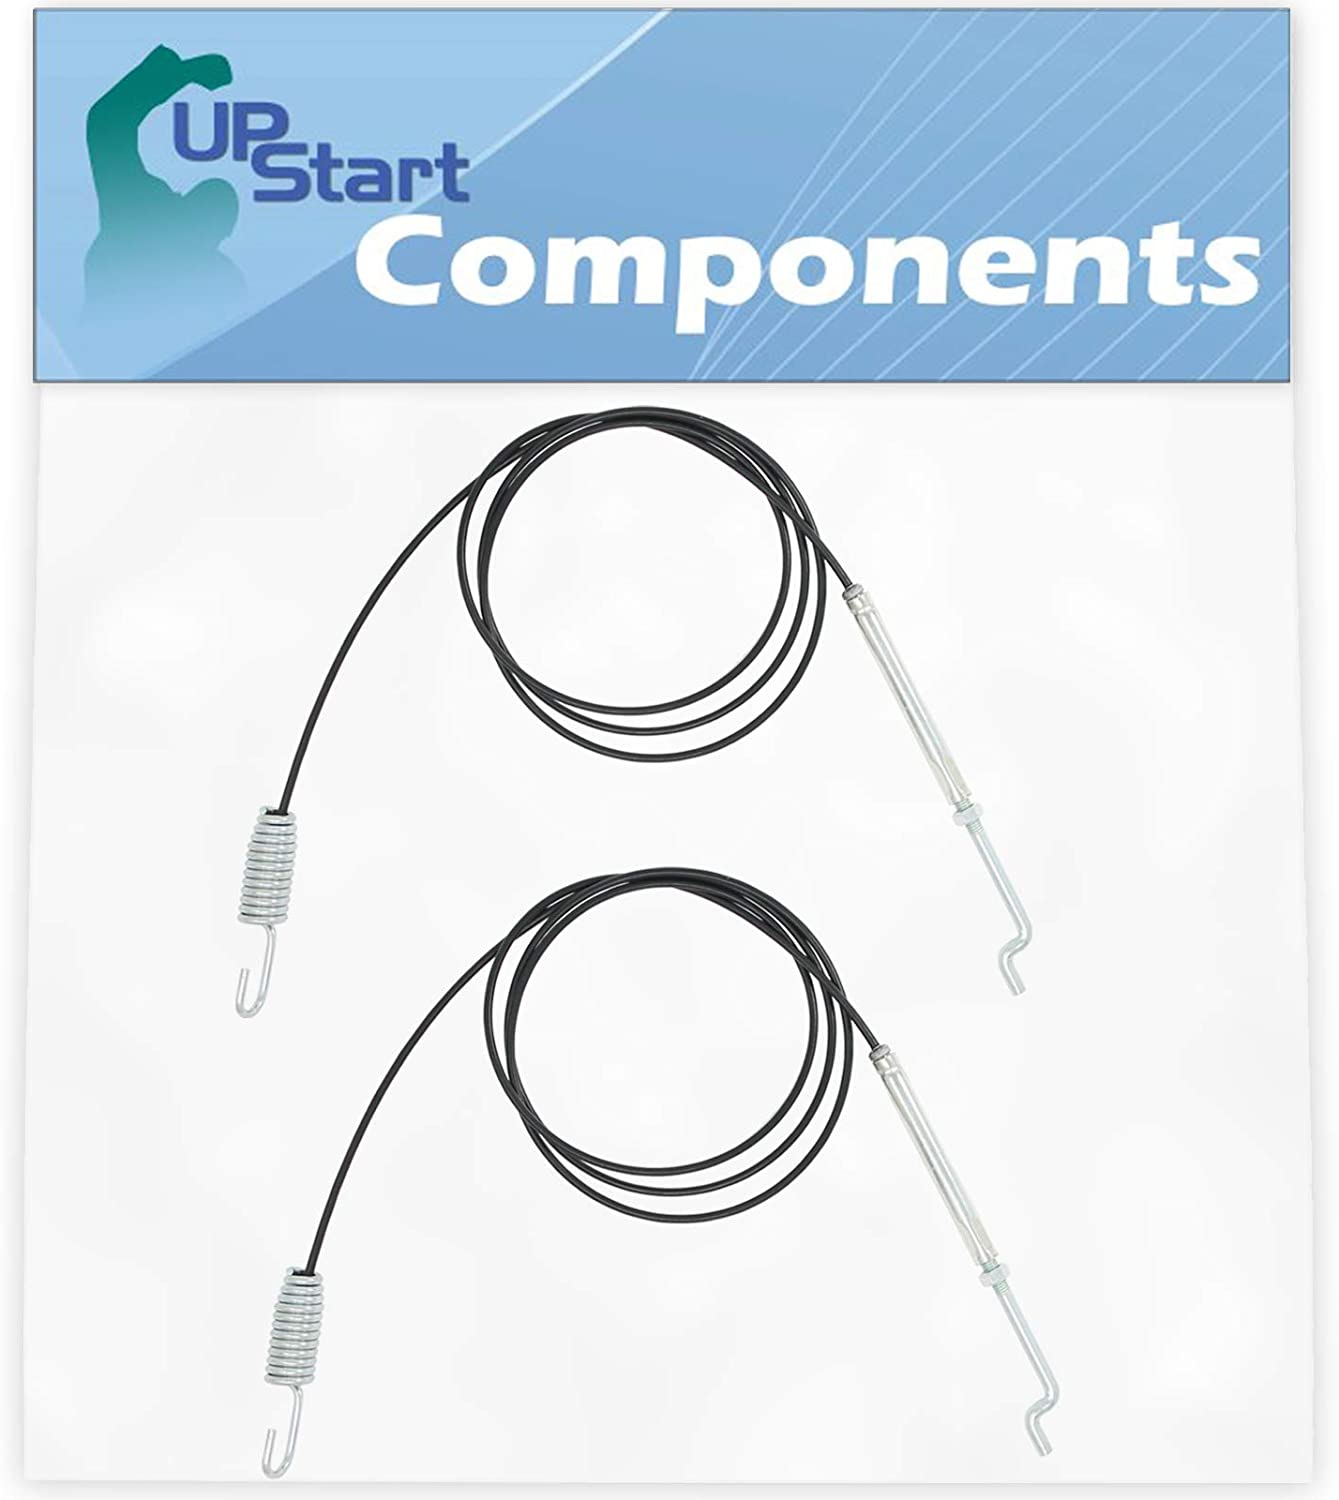 UpStart Components 2-Pack 746-0897 Auger Clutch Cable Replacement for Cub Cadet 31AE5E3F101 - Compatible with 946-0897 Auger Cable